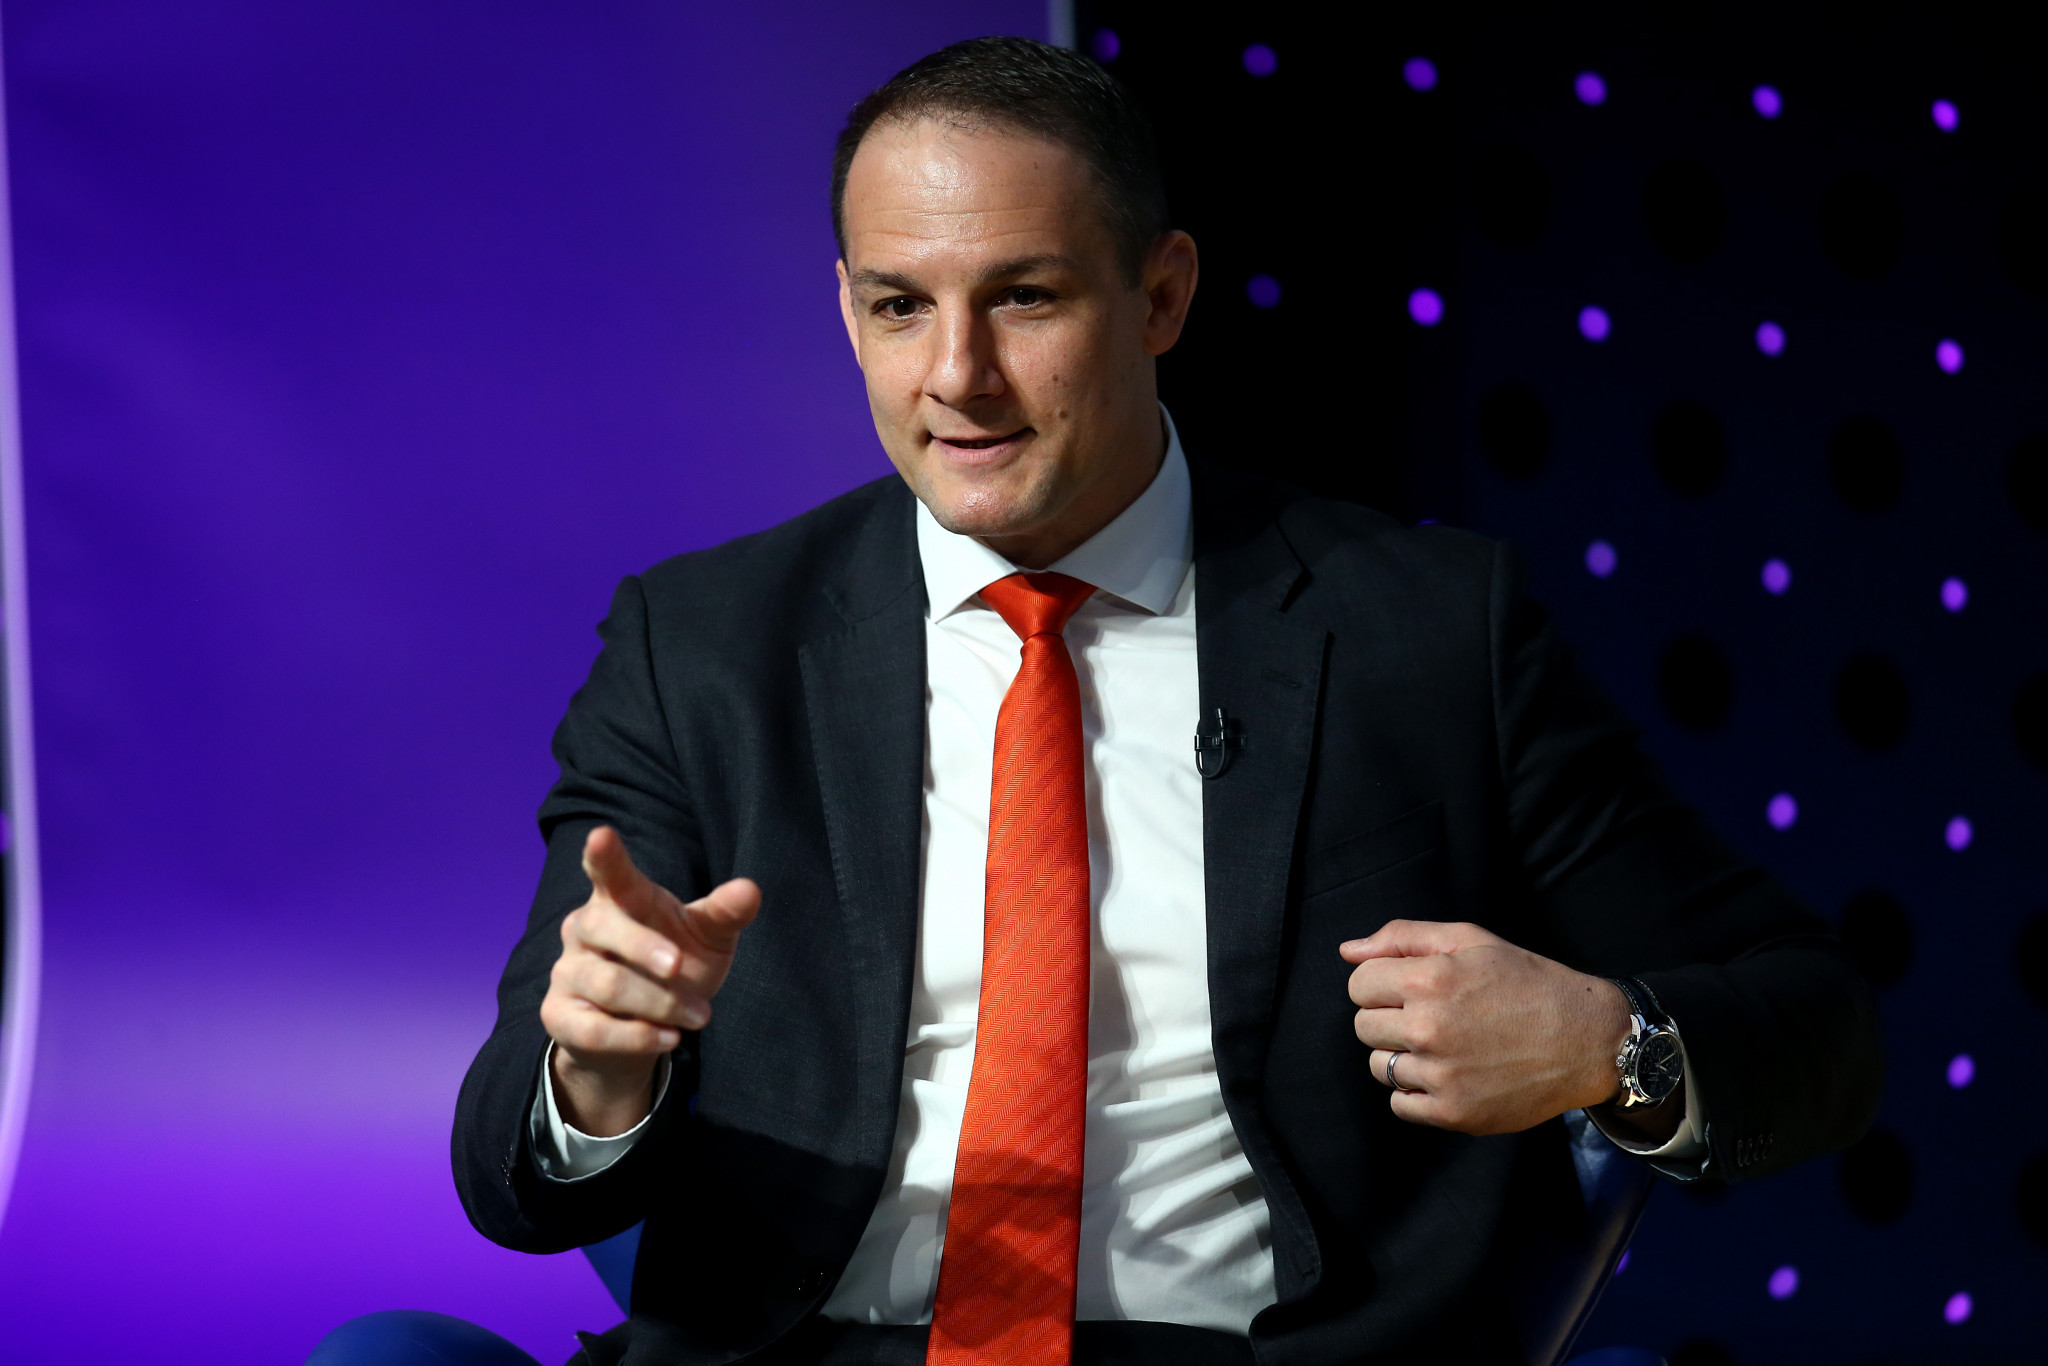 David Grevemberg, chief executive of the Commonwealth Games Federation, believes the Bill will enable the West Midlands to deliver a hugely successful multi-sport competition in 2022 ©Getty Images